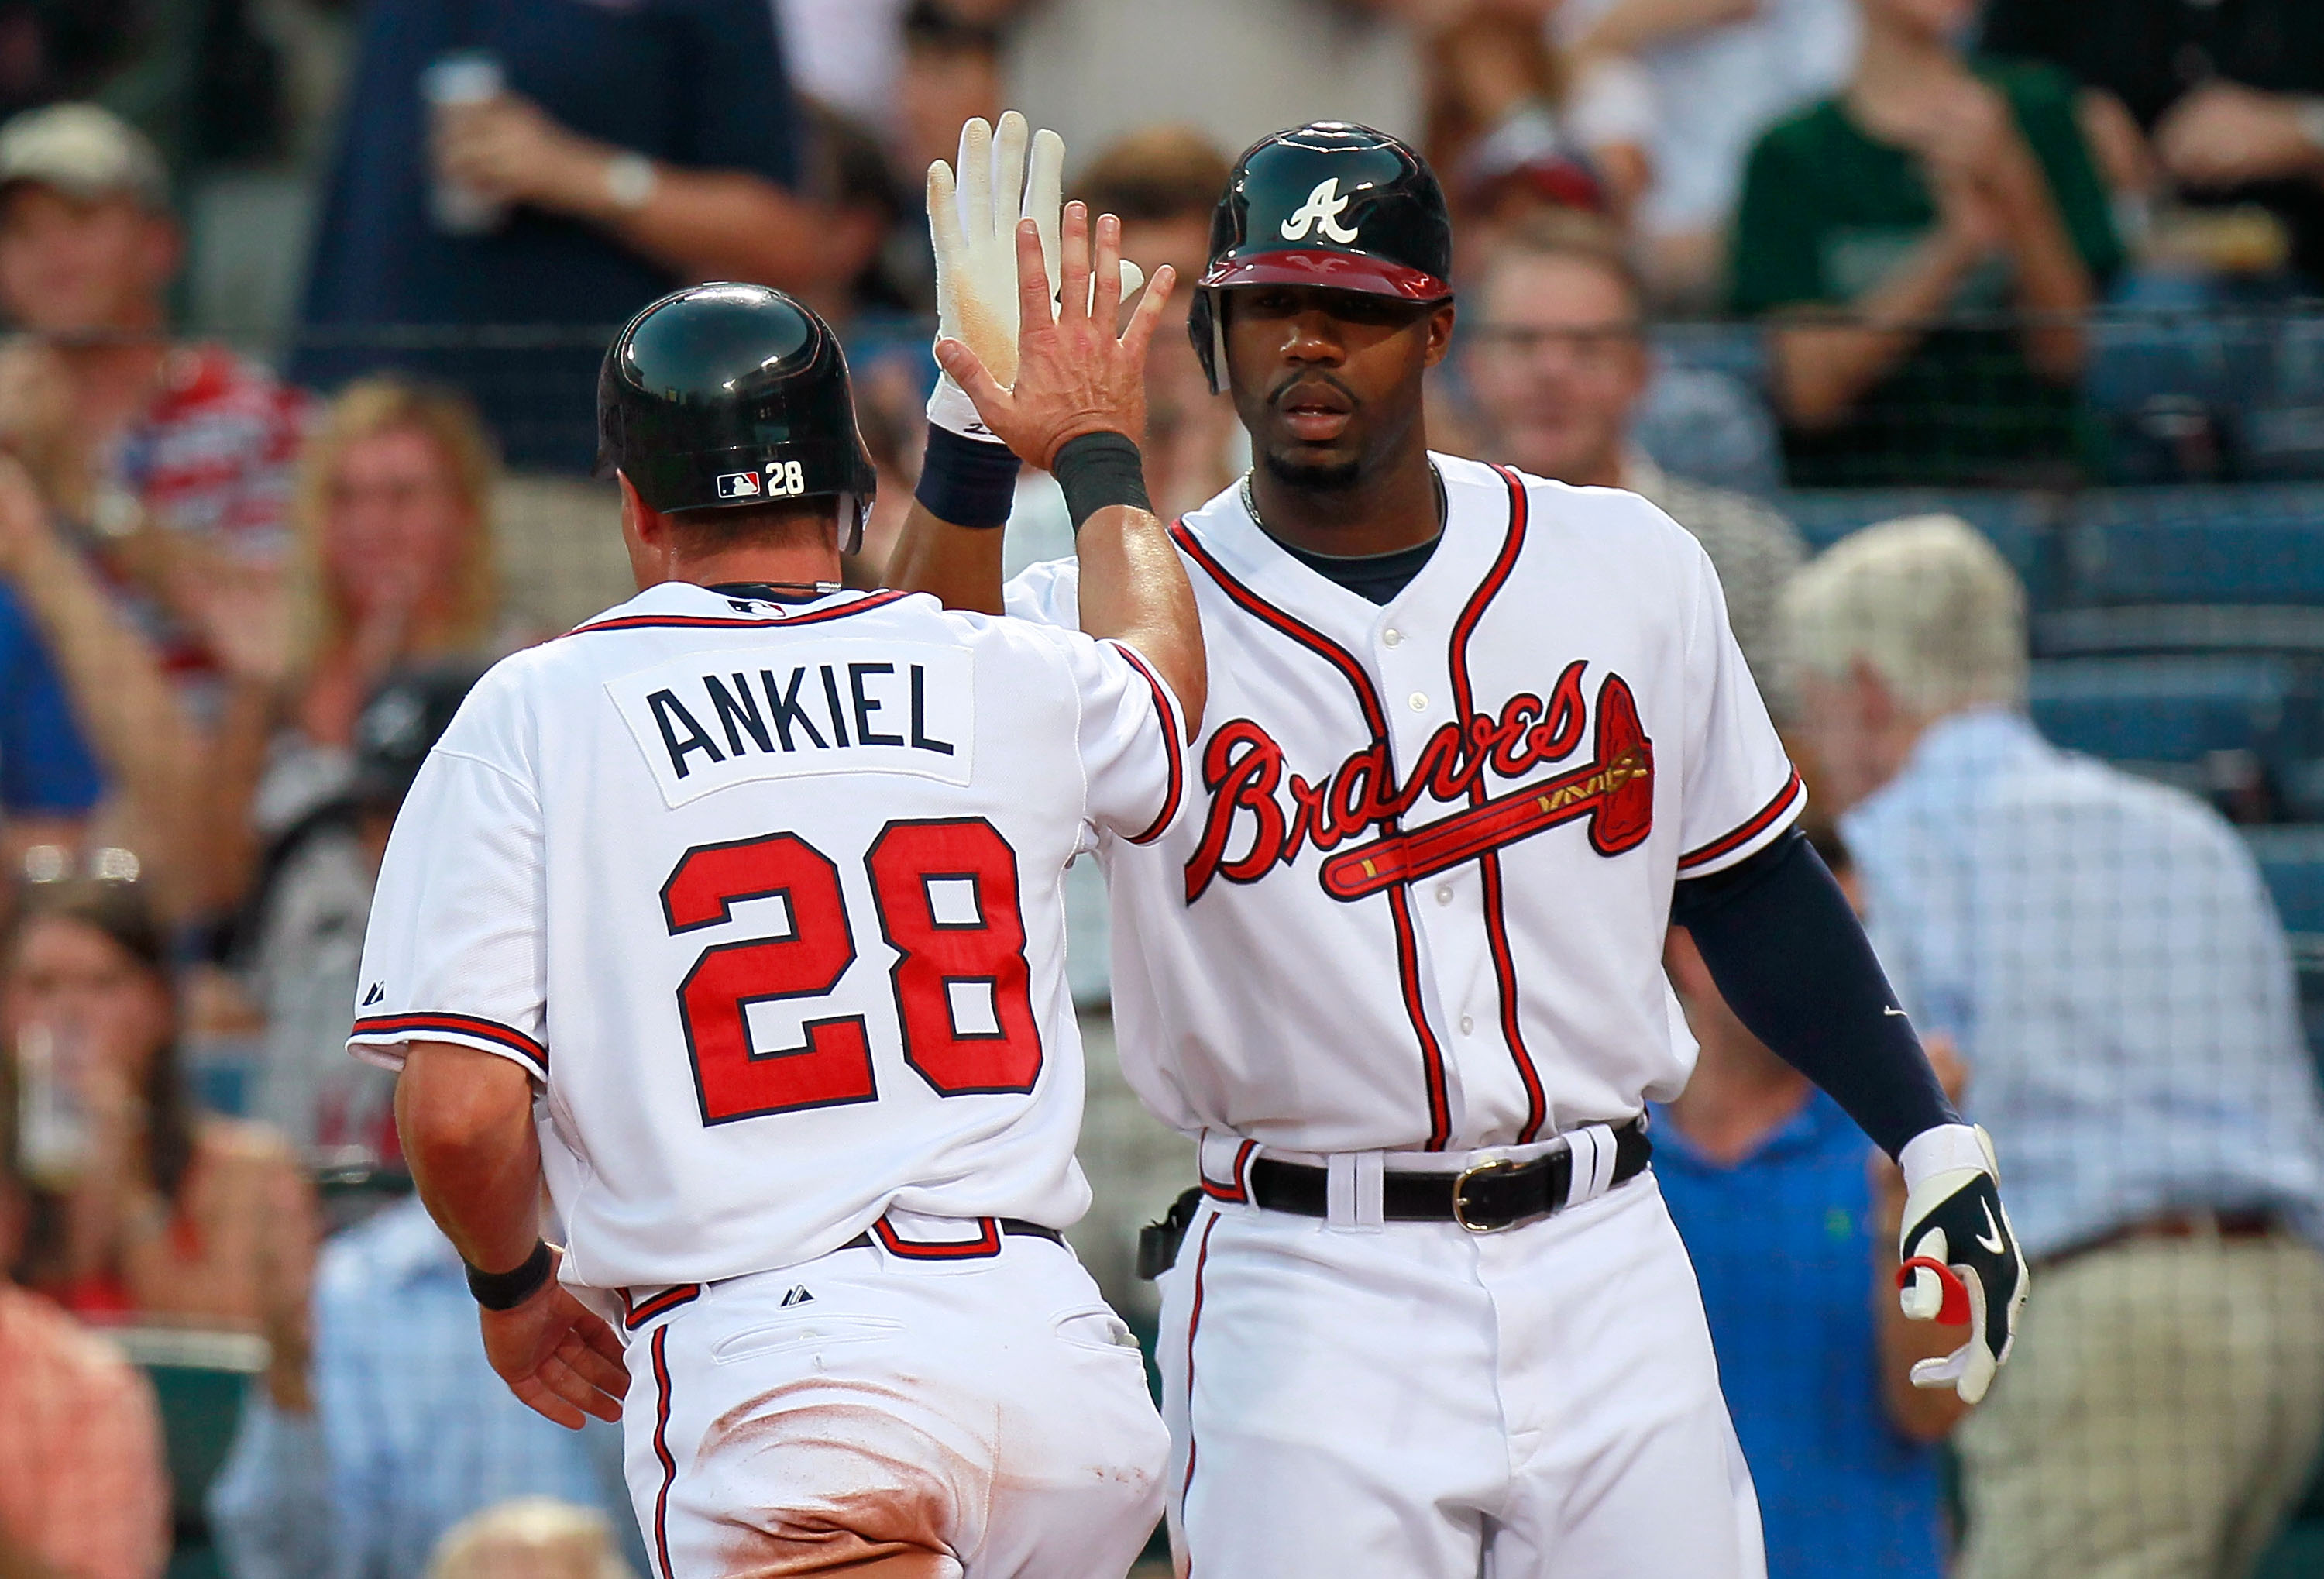 ATLANTA - SEPTEMBER 01:  Jason Heyward #22 of the Atlanta Braves congratulates Rick Ankiel #28 after Ankiel scored against the New York Mets at Turner Field on September 1, 2010 in Atlanta, Georgia.  (Photo by Kevin C. Cox/Getty Images)